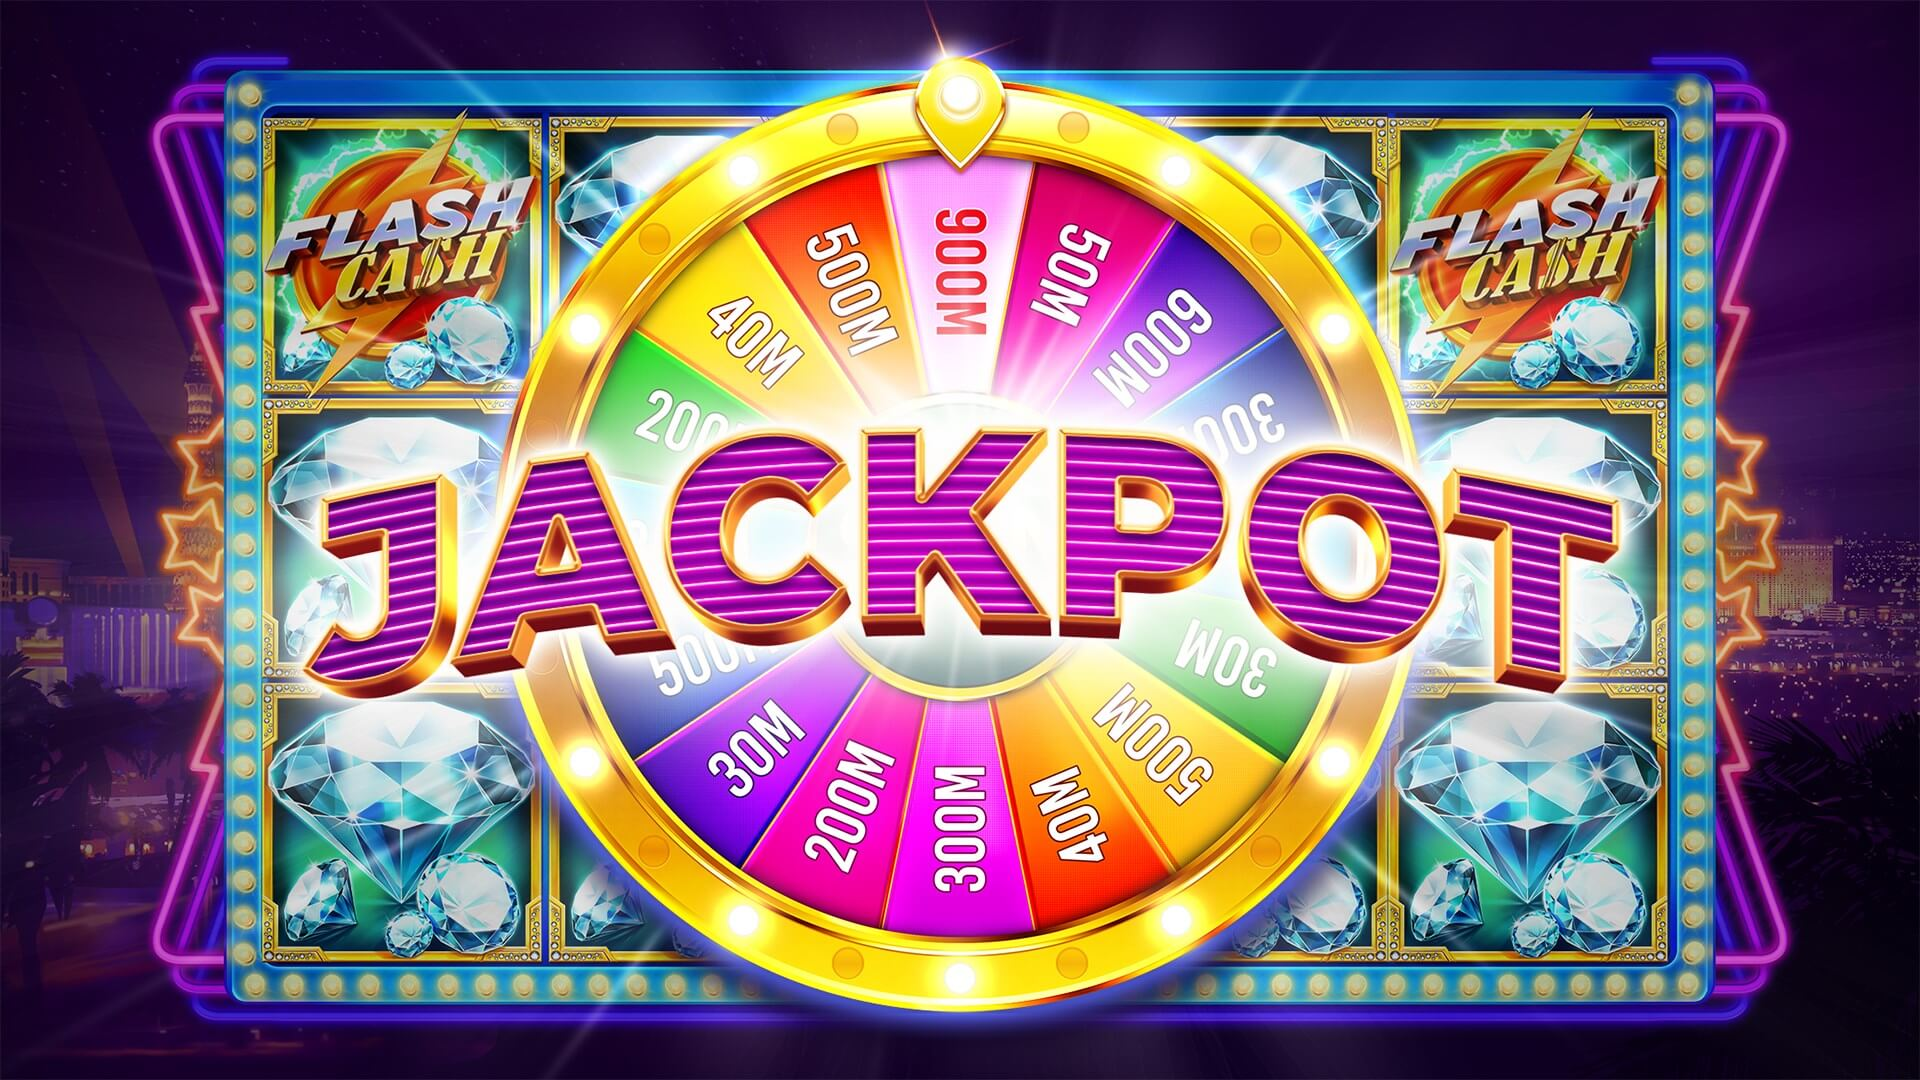 Advantages of Using Tricks in Online Gambling Games